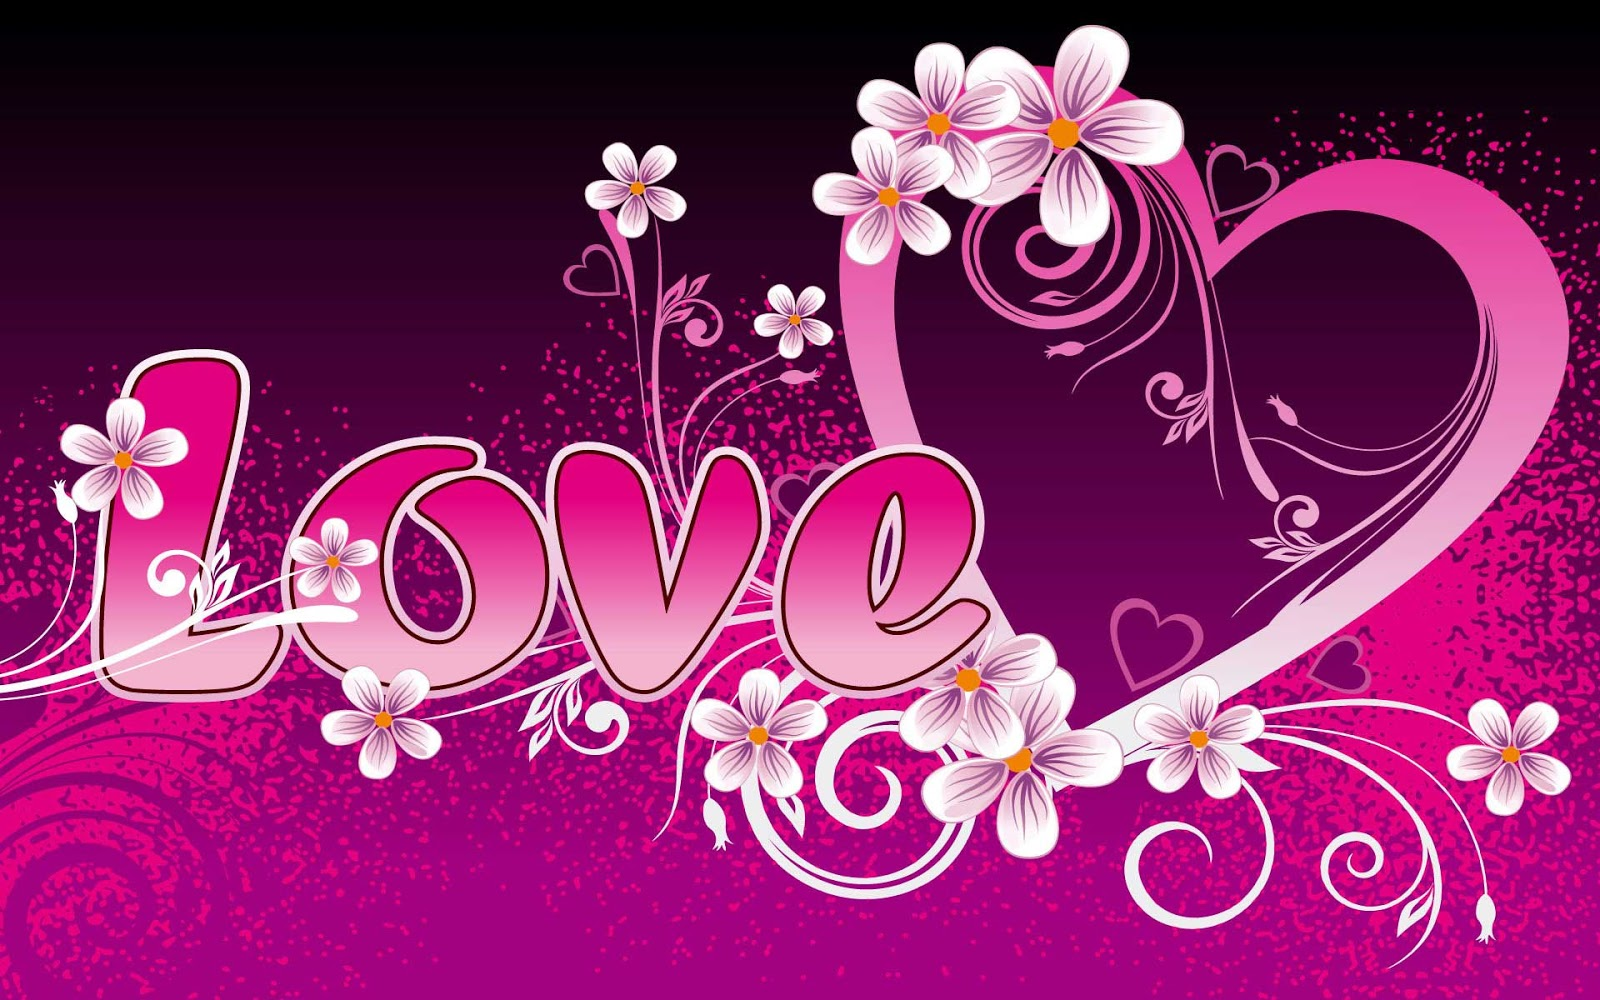 Love Wallpaper For Desktop Best Hd : Beautiful Love WallpaperWallpaper Background Wallpaper Background